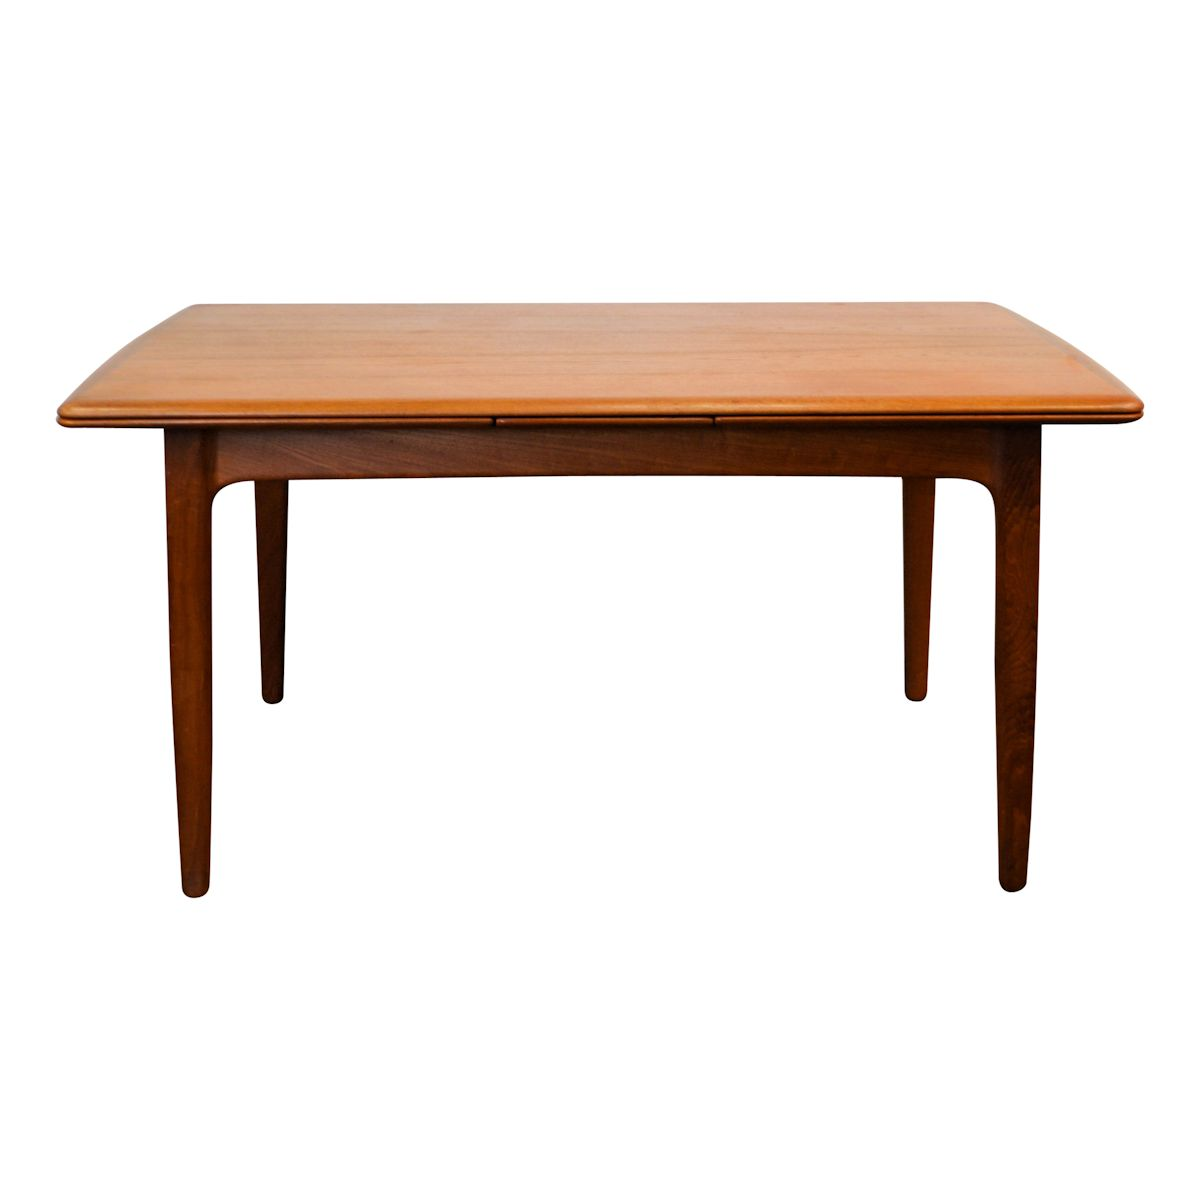 Vintage Danish Modern Svend Aage Madsen Dining Table - front and top